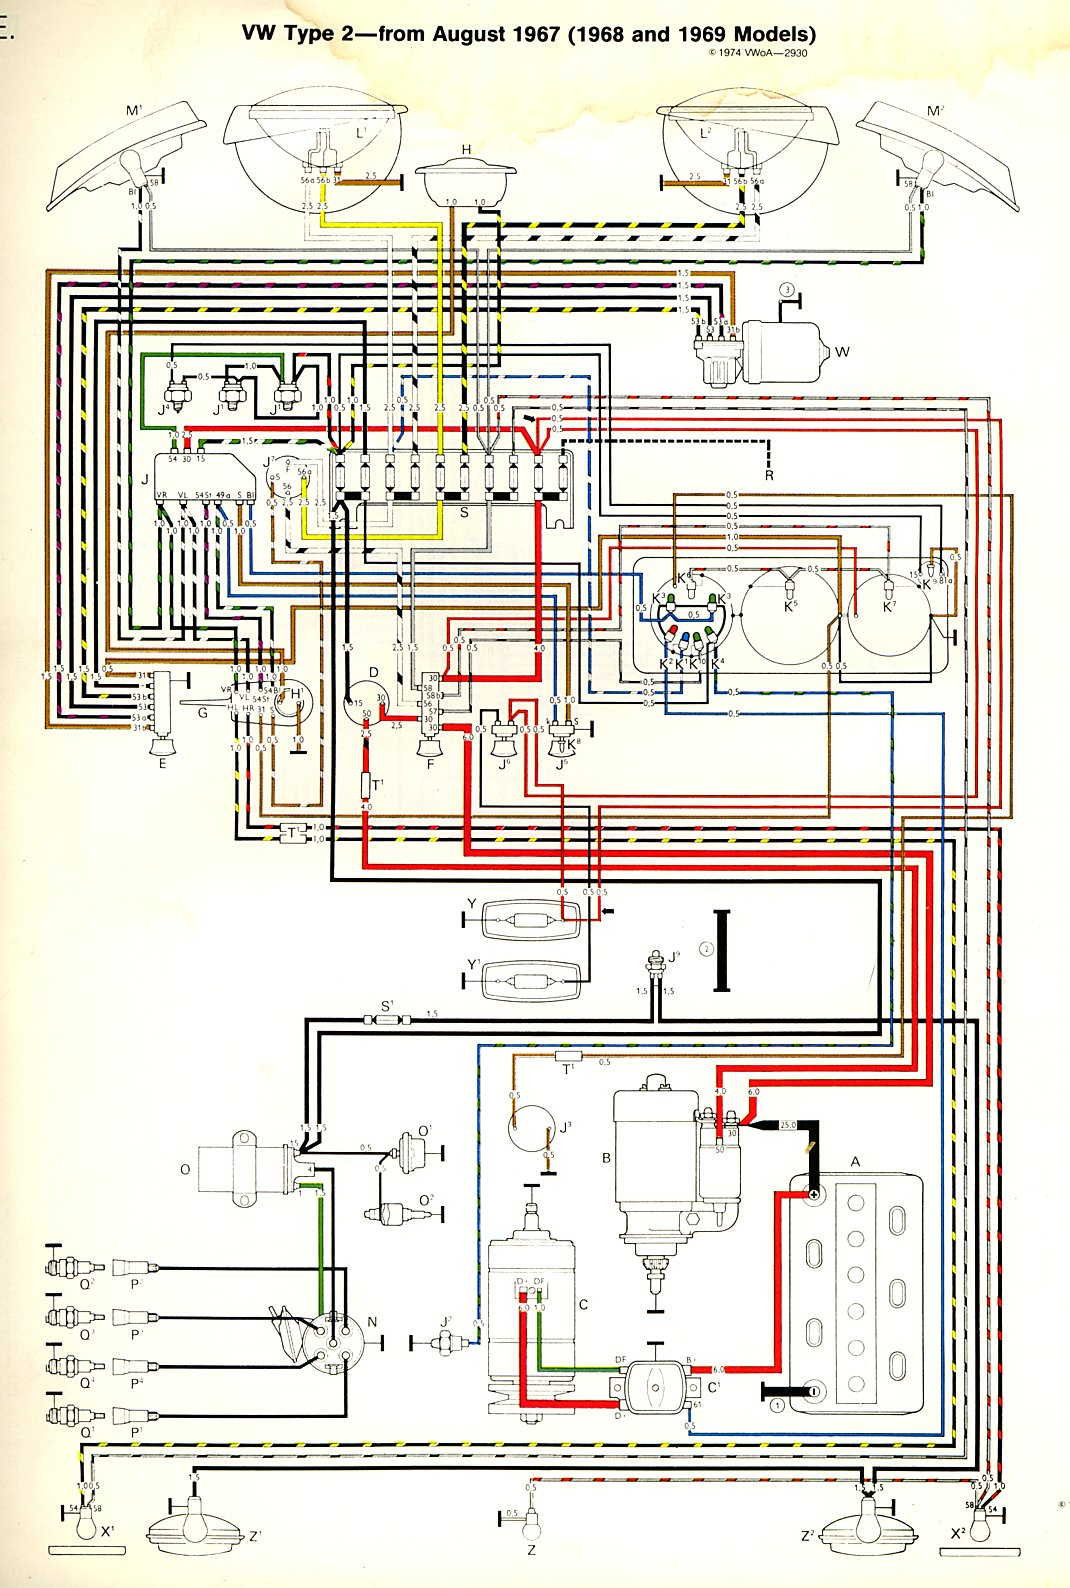 baybus_6869a 1968 69 bus wiring diagram thegoldenbug com 1969 vw beetle wiring diagram at bayanpartner.co